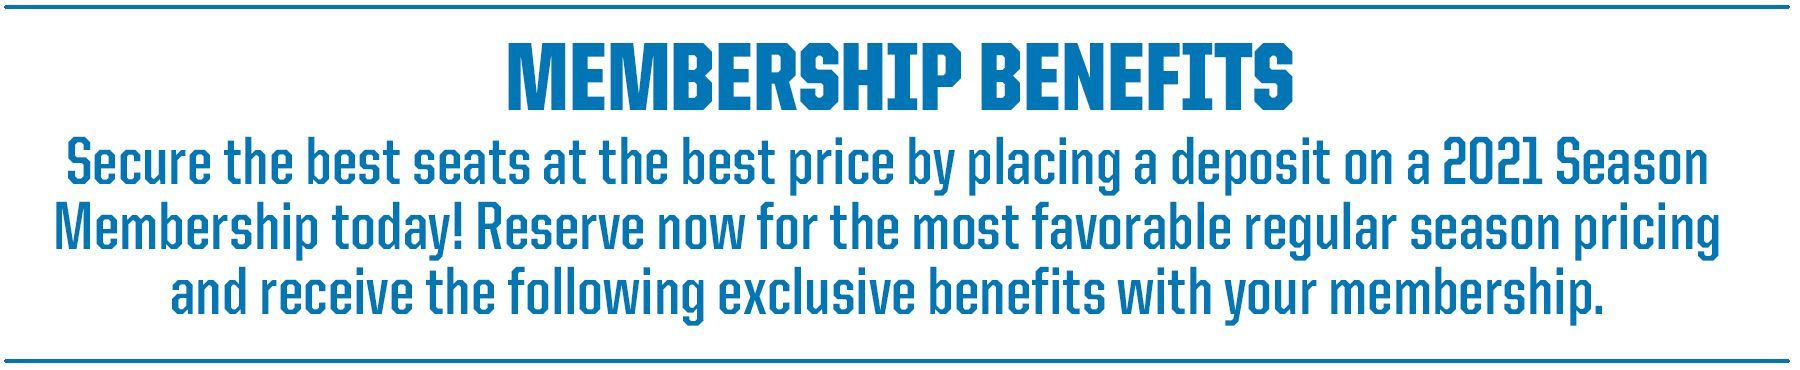 membership-benefits